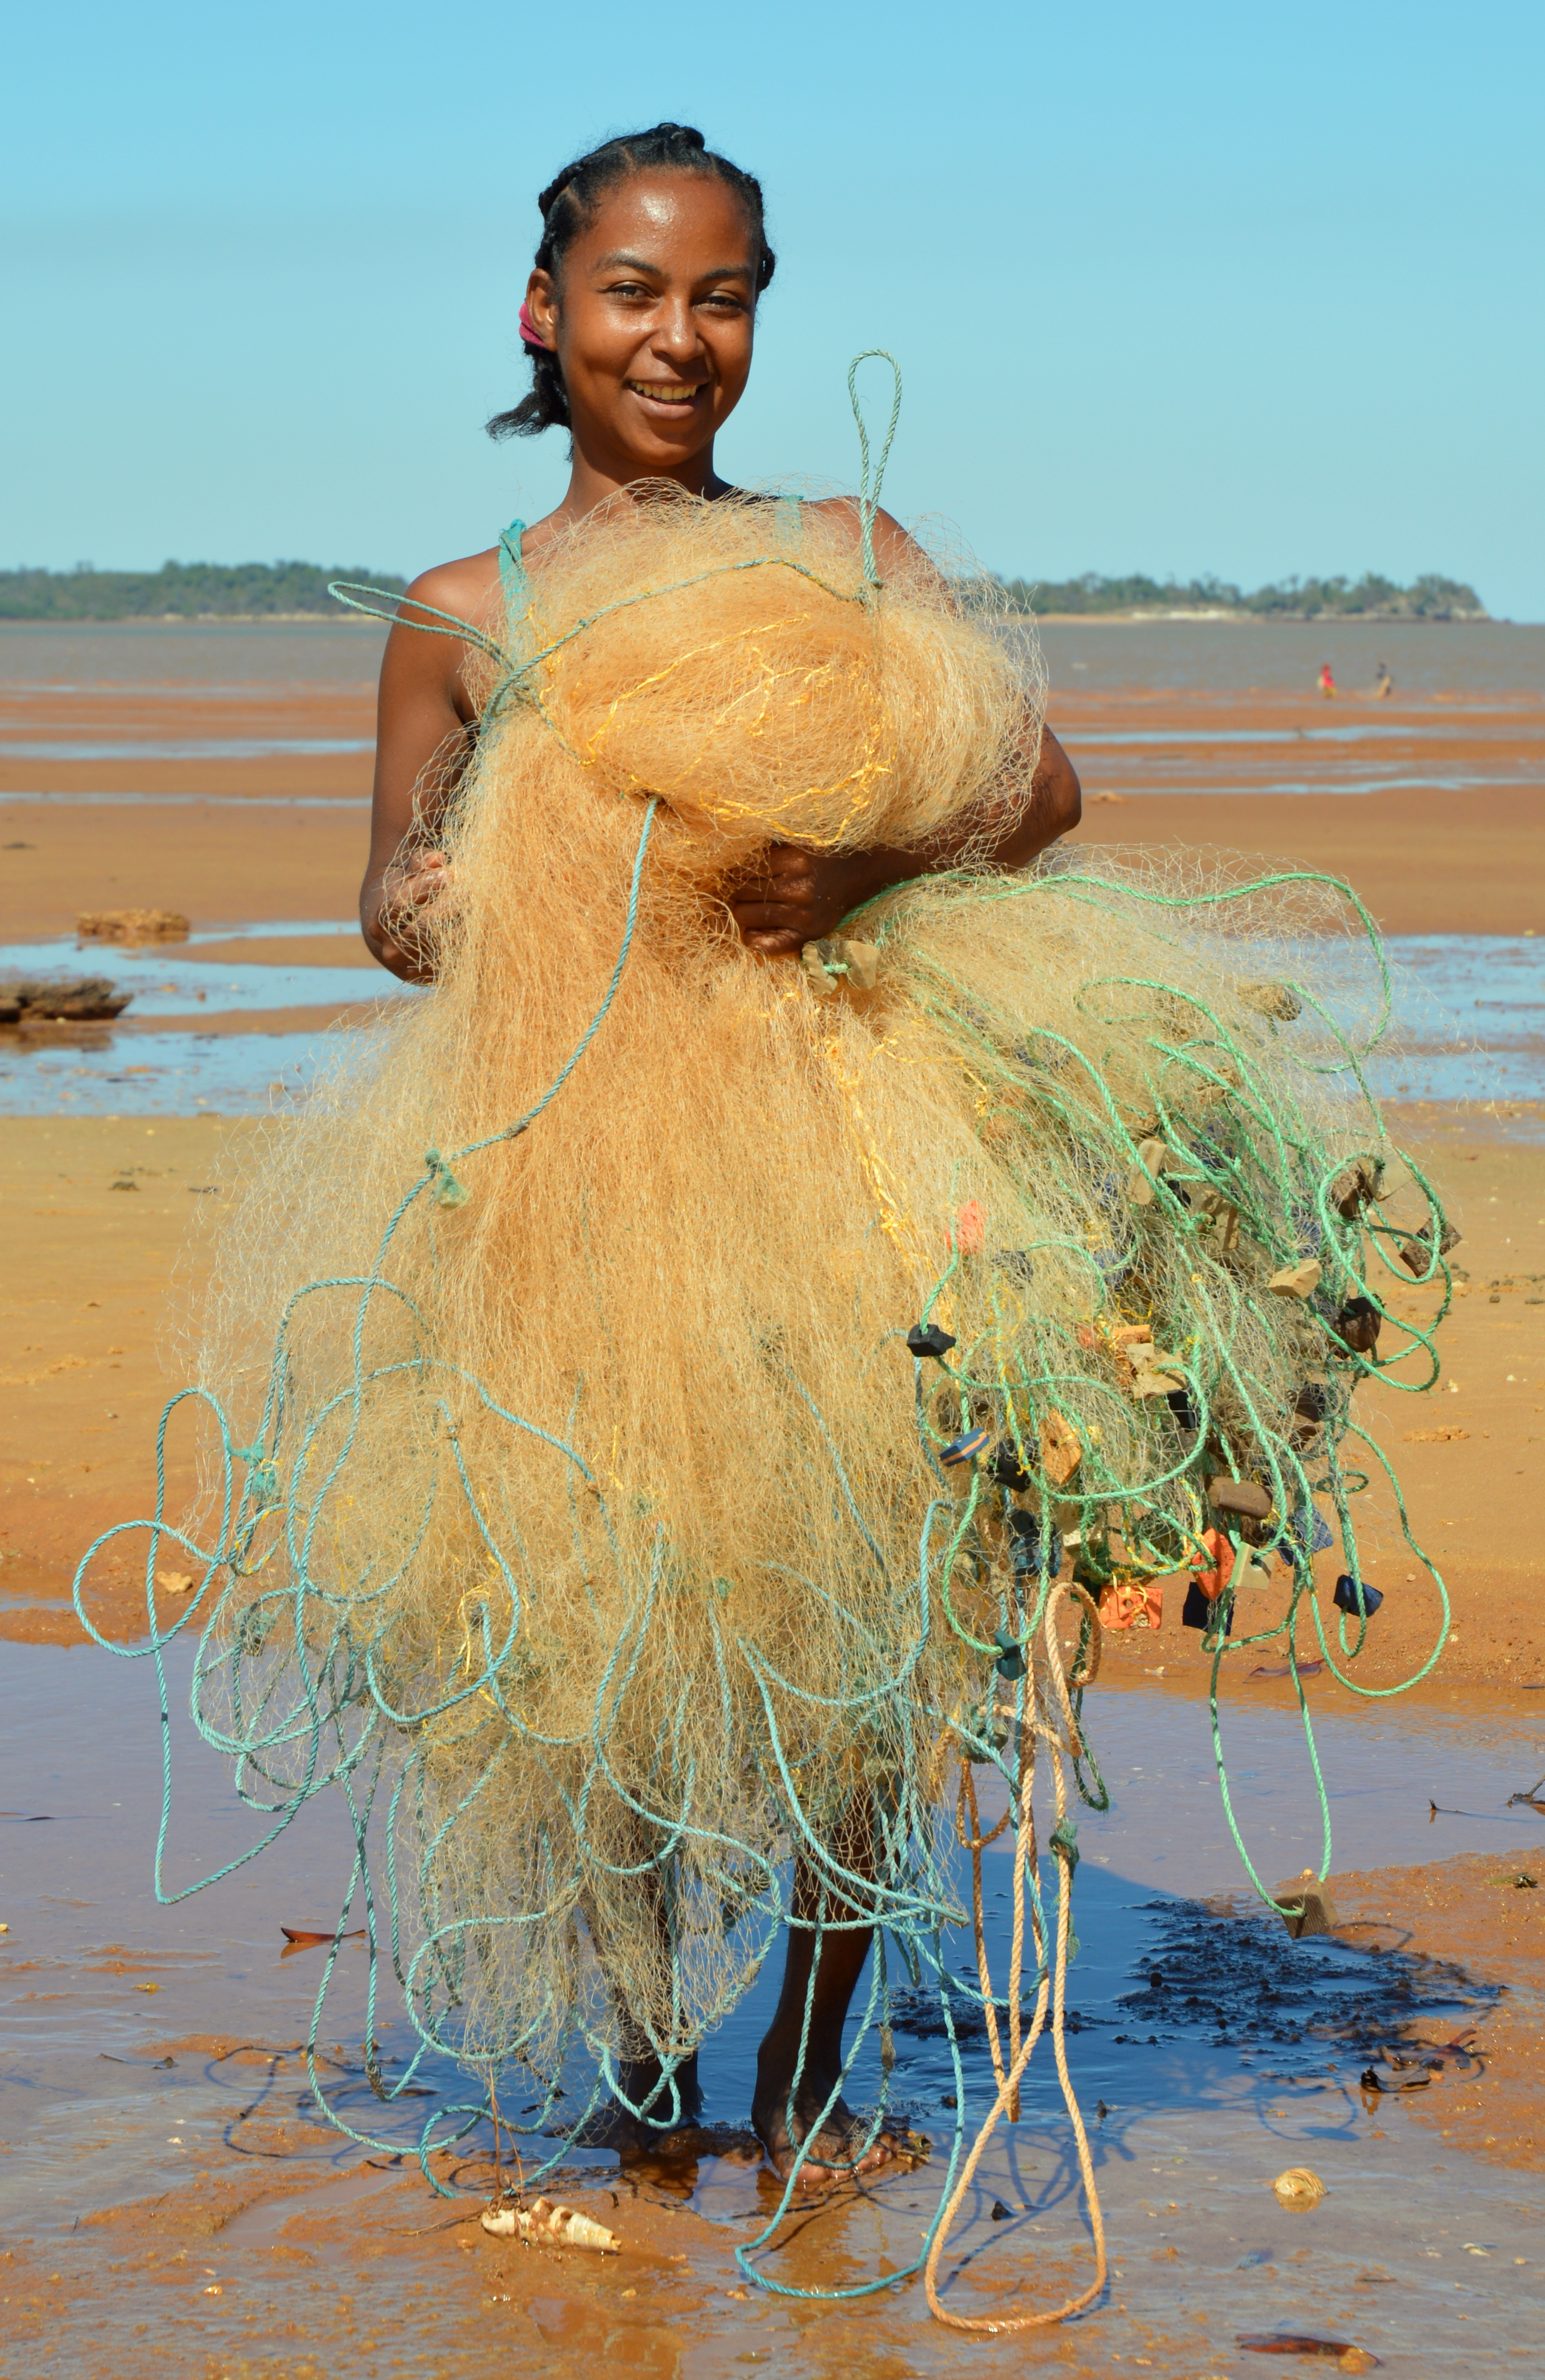 A woman on her way to fish from the beach, using a cast net, in northern Madagascar. Photo by Ruth Leeney.